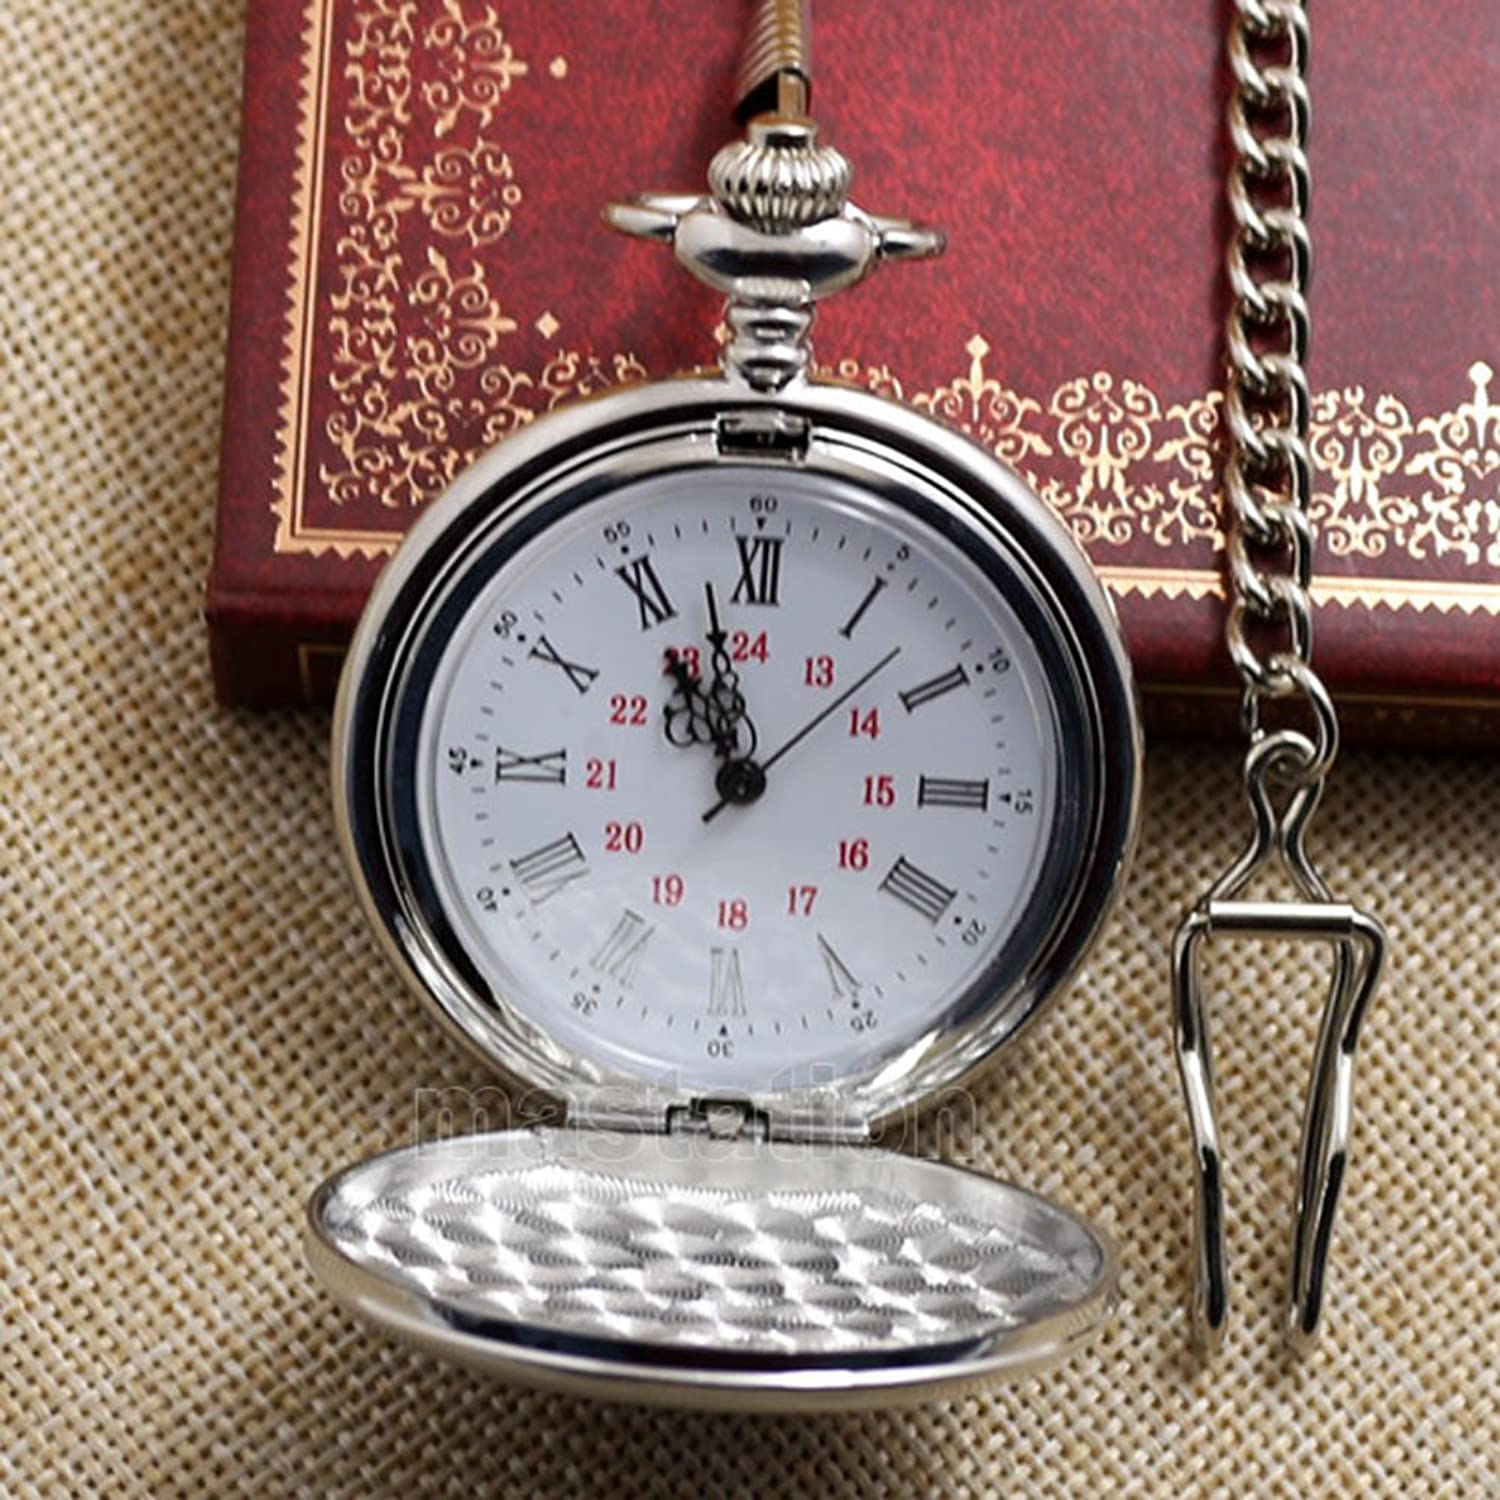 Men's Steampunk Costume Essentials WIOR Classic Smooth Vintage Pocket Watch Sliver Steel Men Watch with 14'' Chain for Xmas Fathers Day Gift $9.99 AT vintagedancer.com